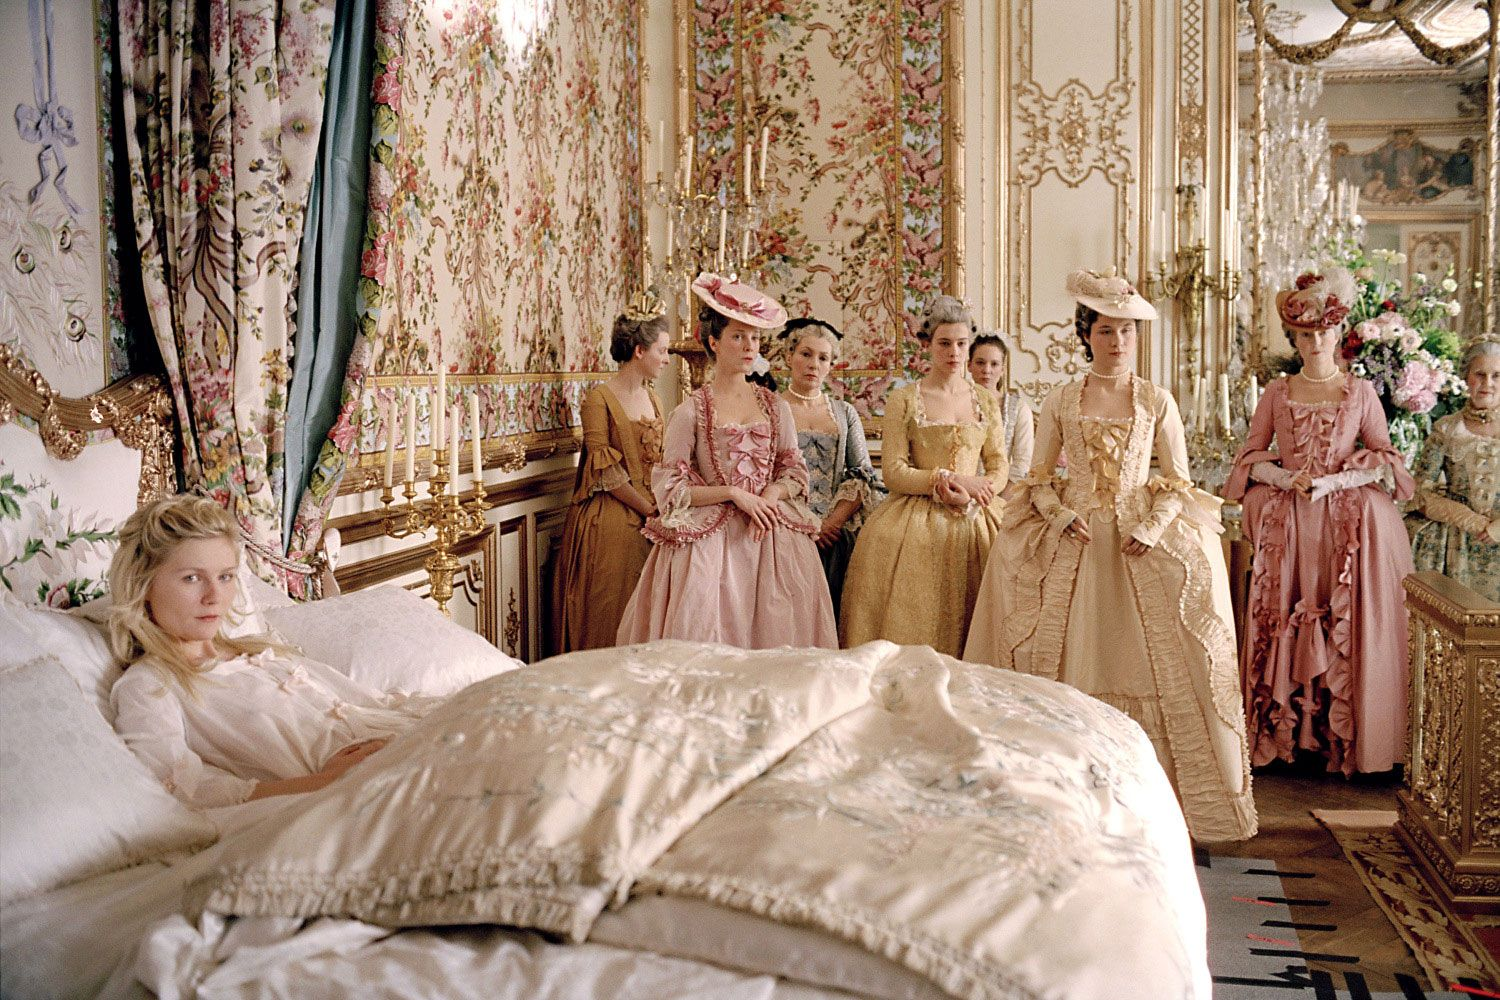 Marie Antoinette Inspired Wedding Dress 88 Inspirational Design in the Movies